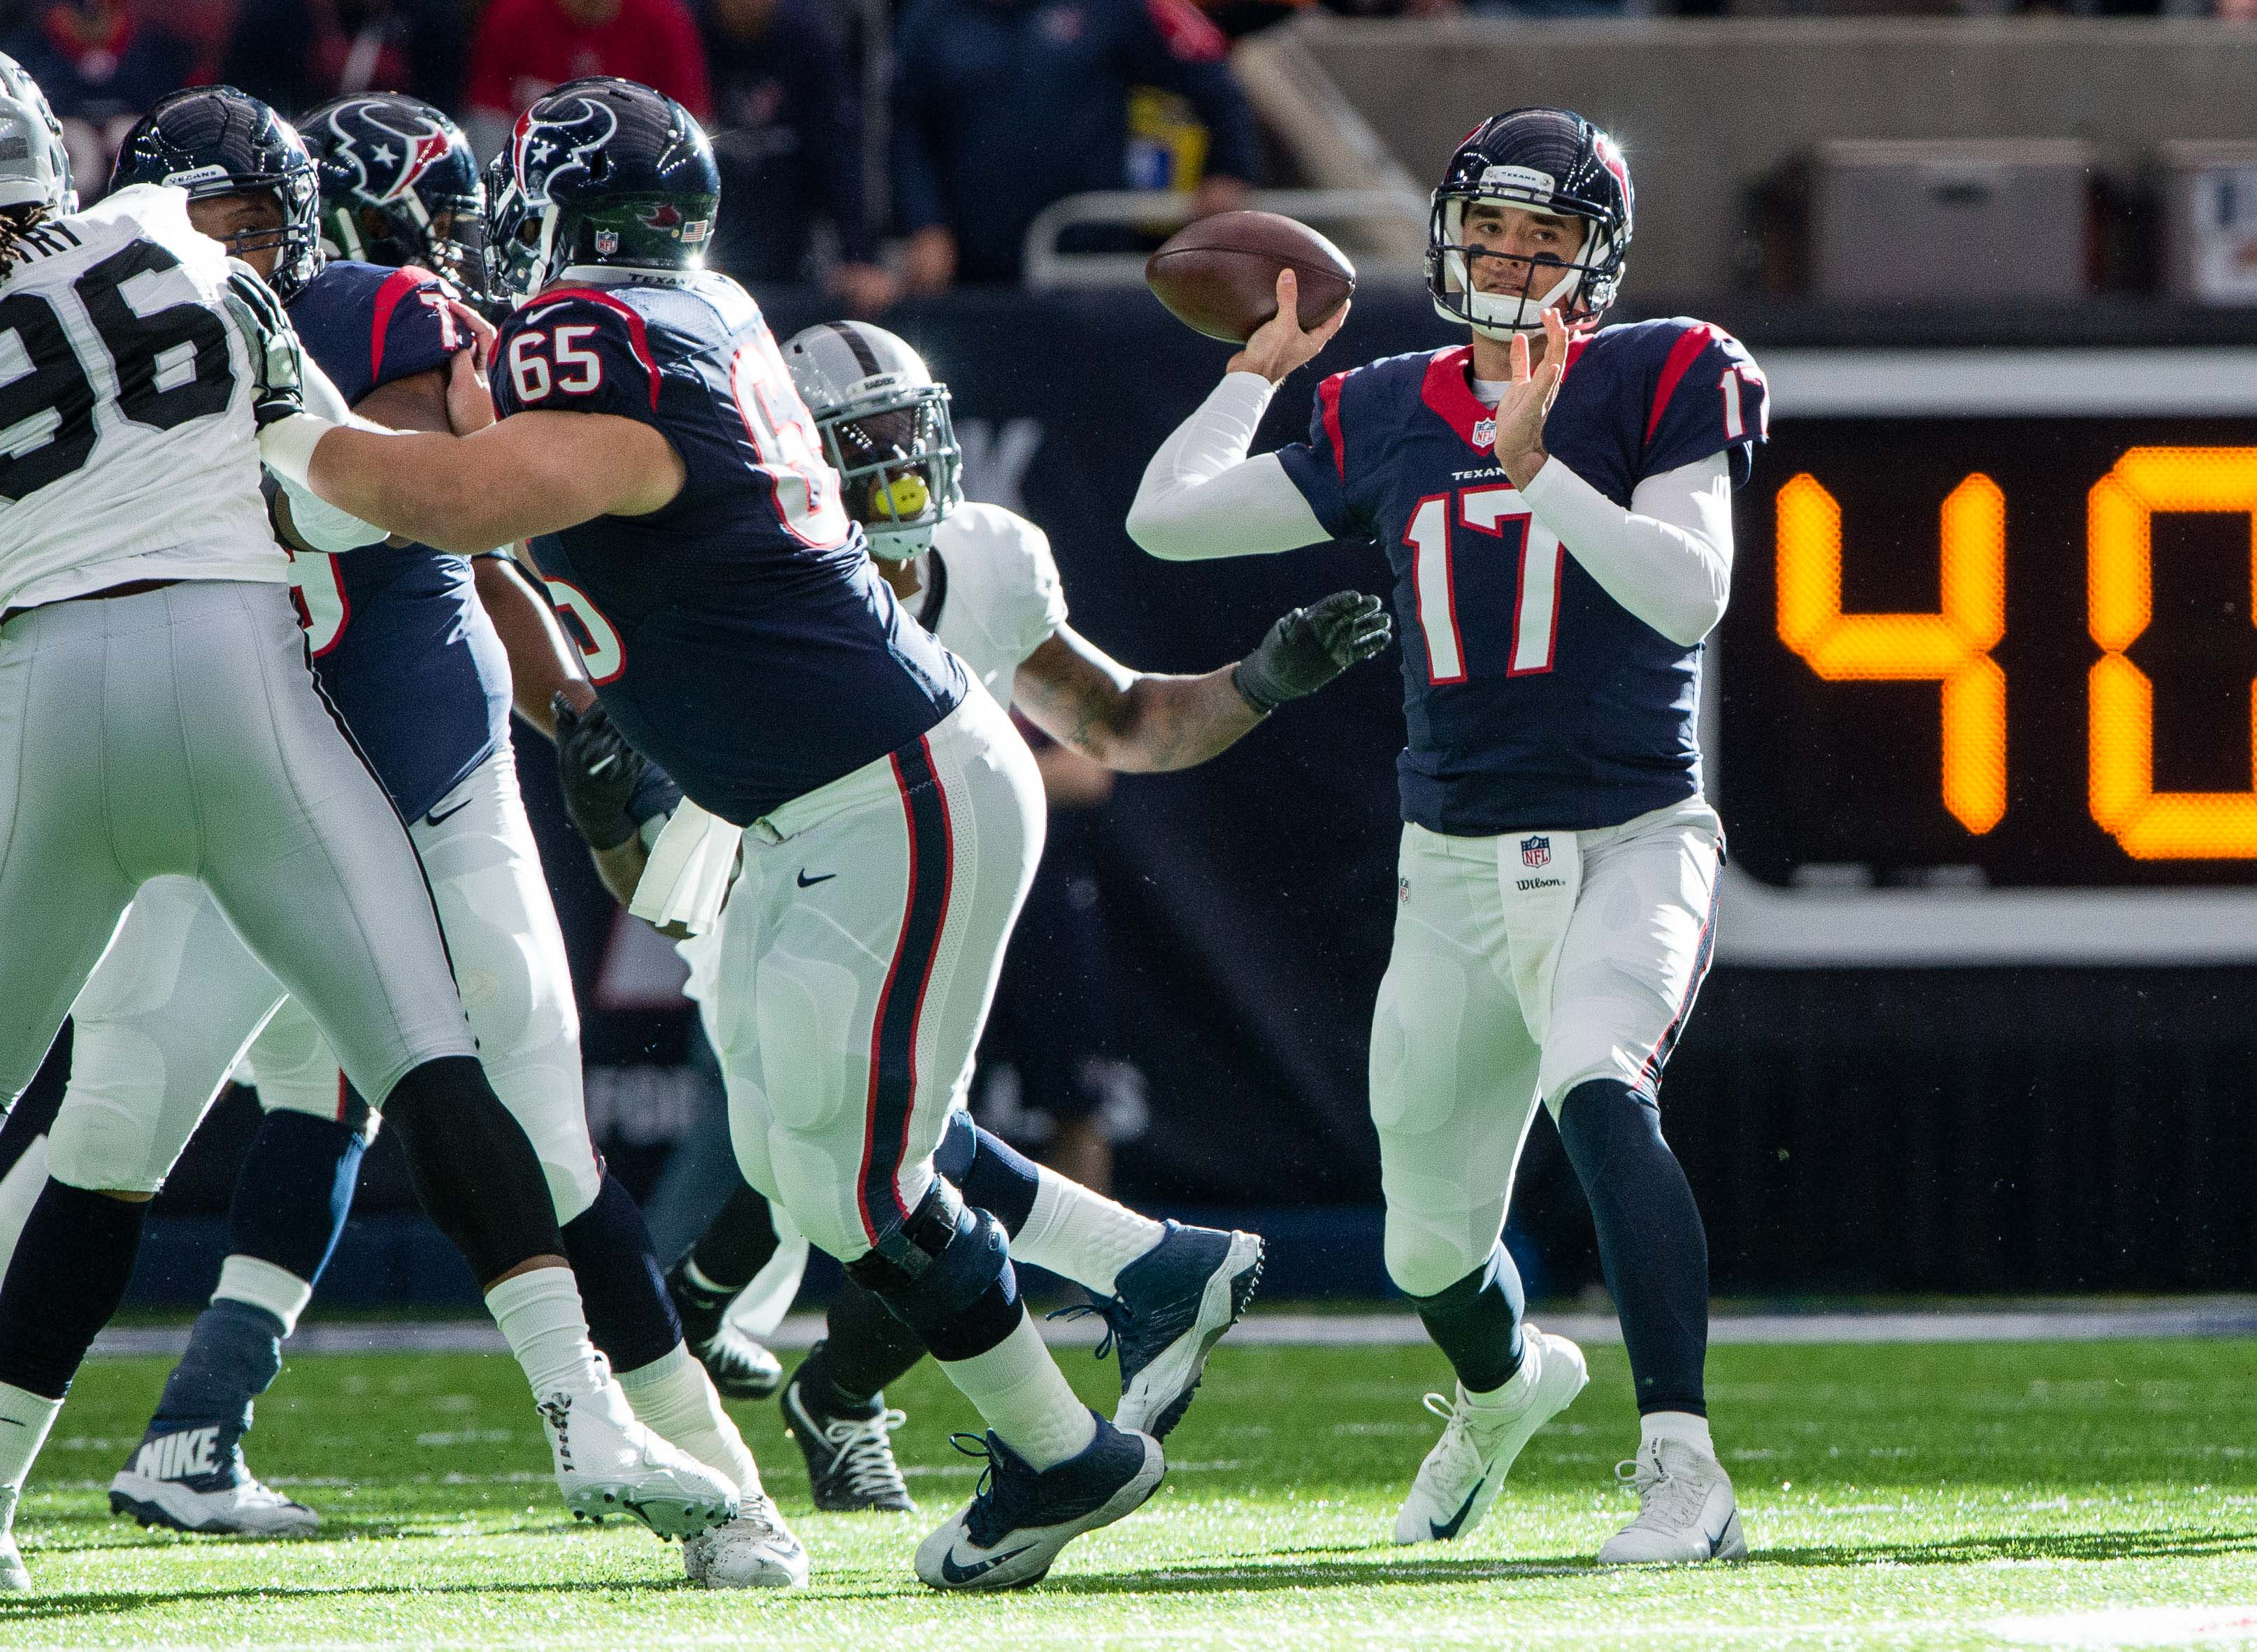 9805093-nfl-afc-wild-card-oakland-raiders-at-houston-texans